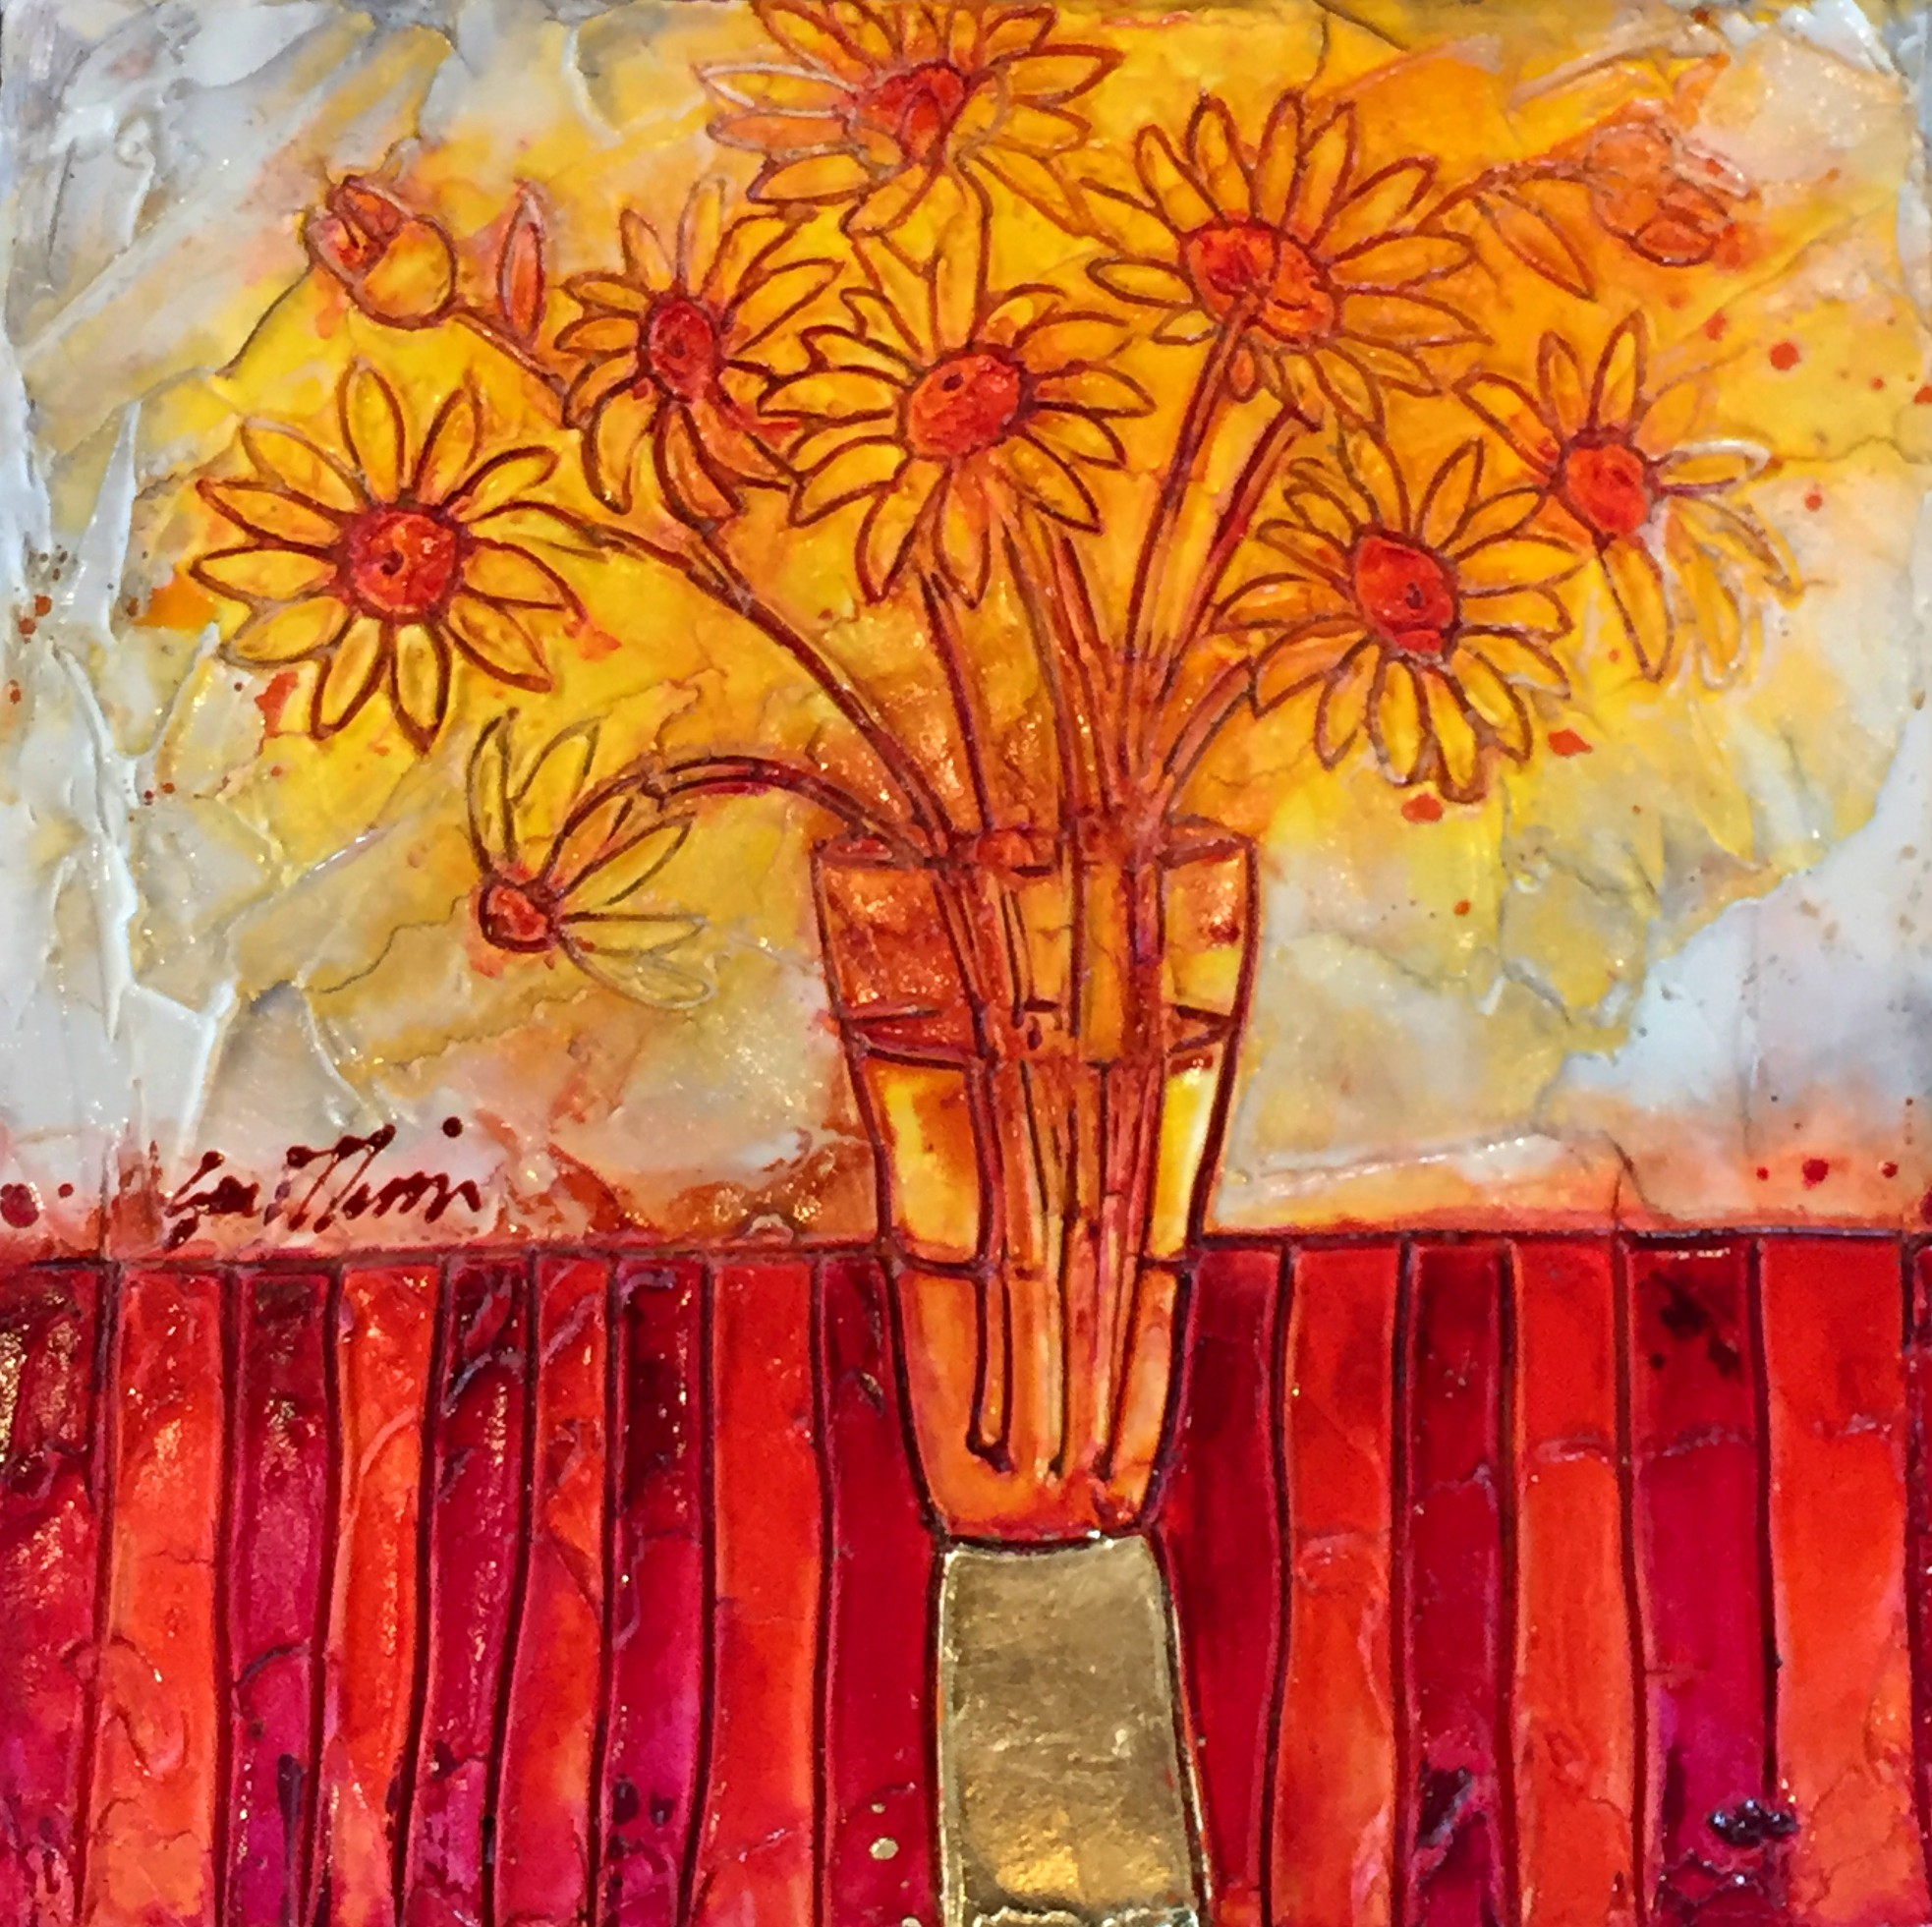 Daisies in Glass, mixed media painting by Joanne Gauthier | Effusion Art Gallery + Cast Glass Studio, Invermere BC